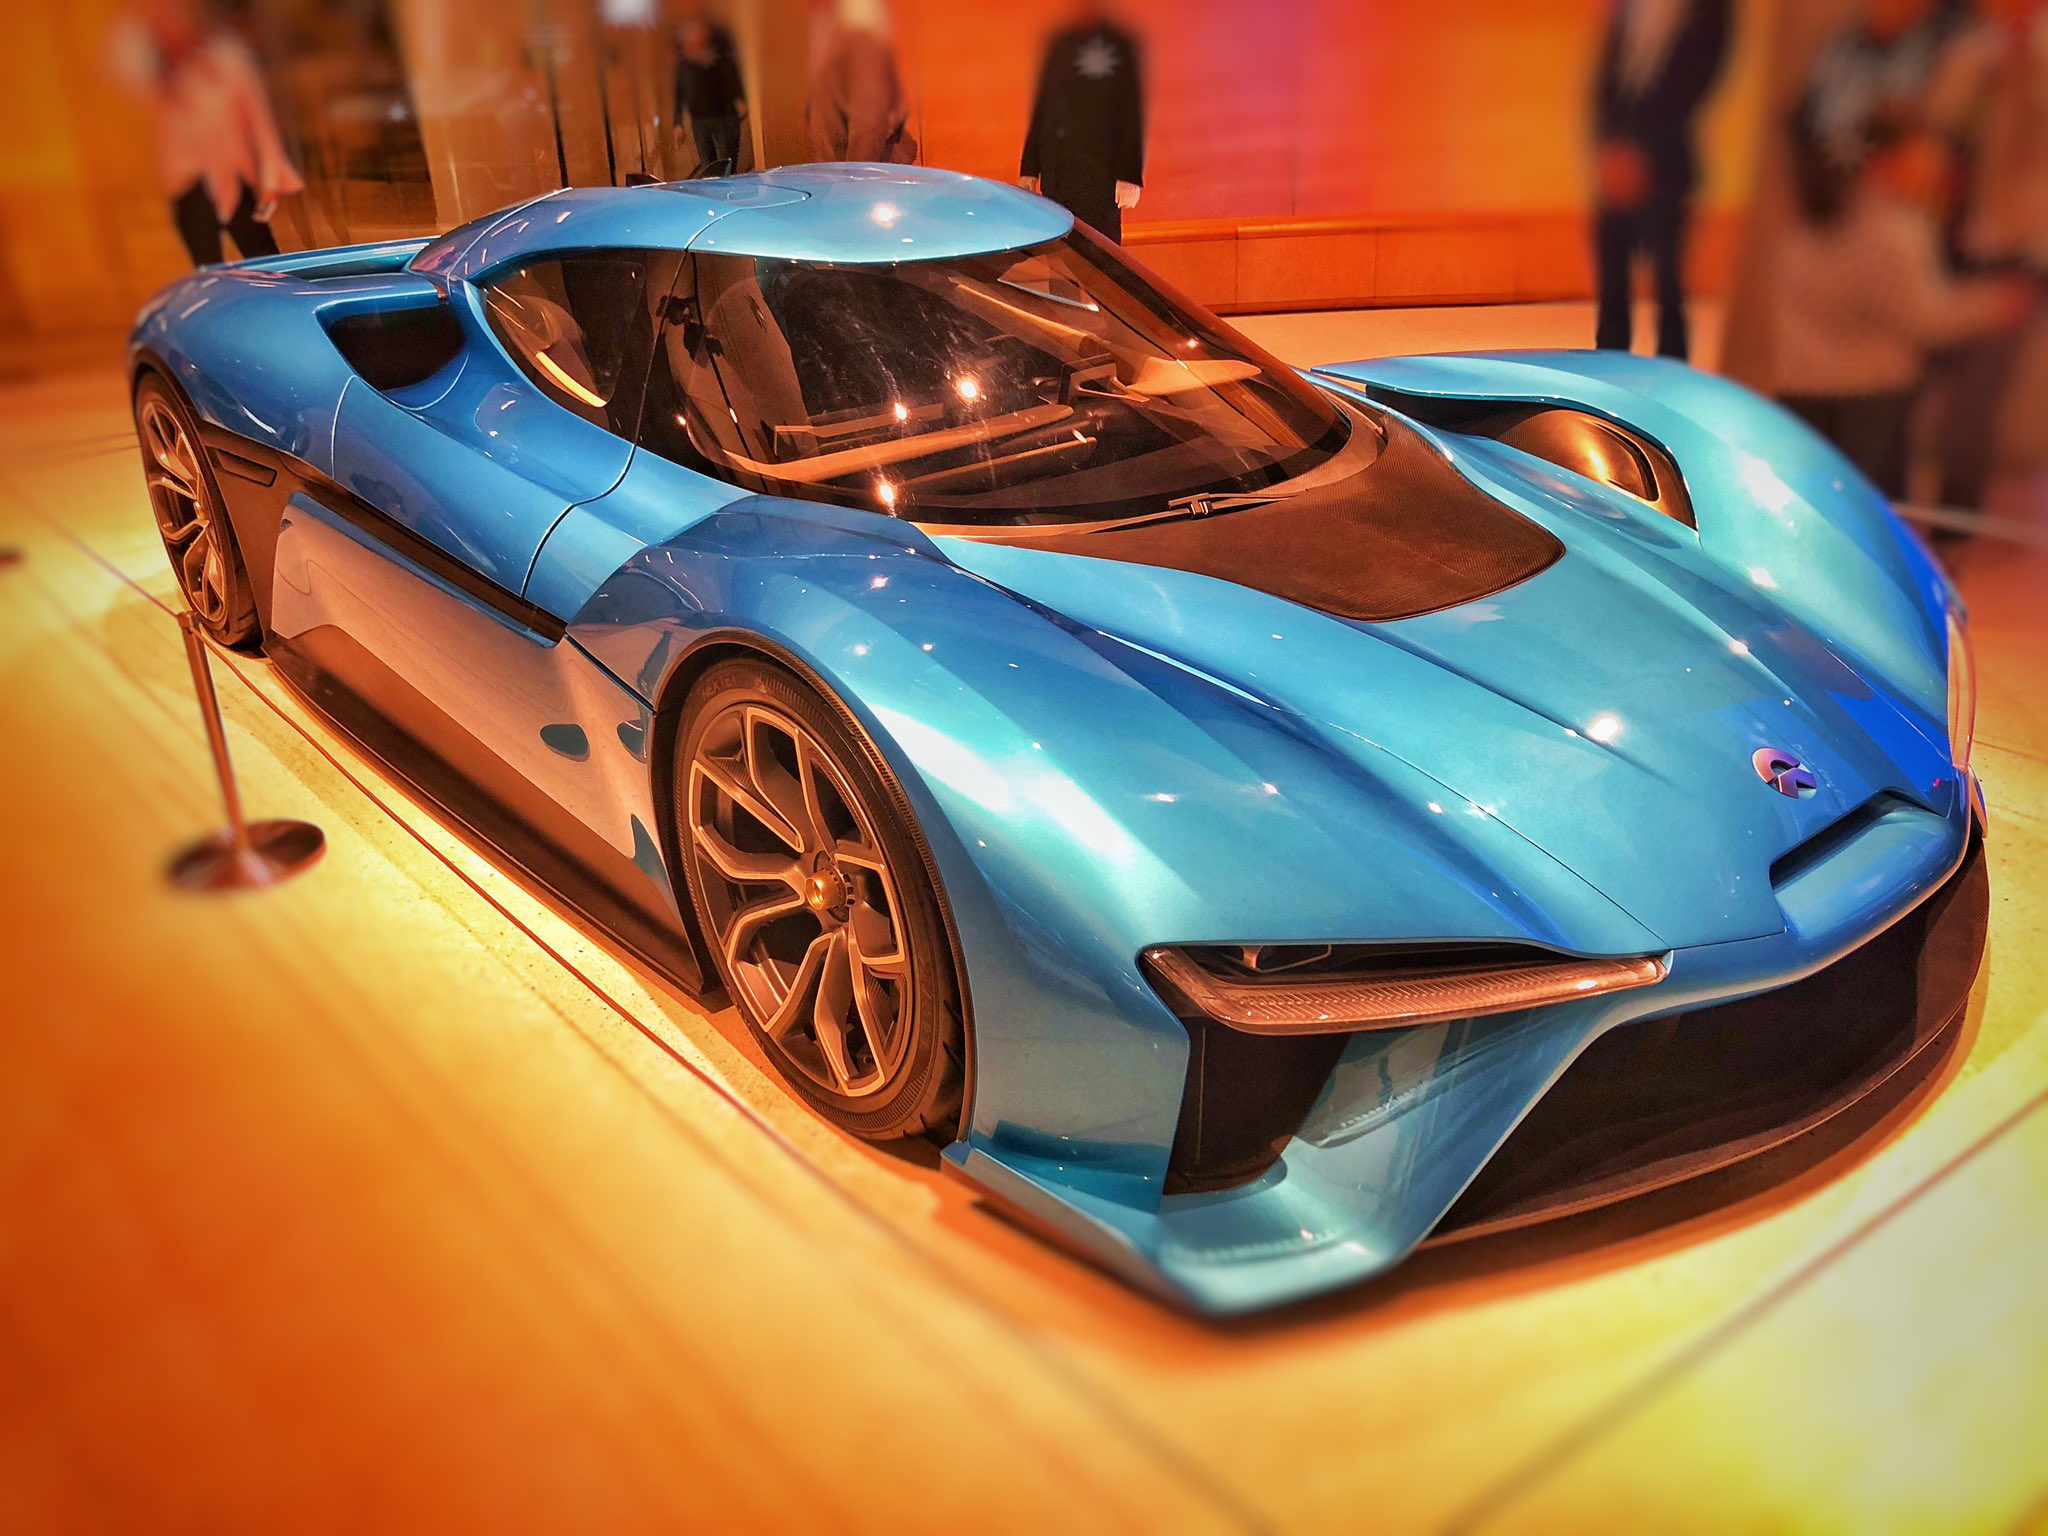 nio-ep9-the-words-fastest-electric-car-%f0%9f%94%a5%f0%9f%94%a5-shanghai-https-t-co-tihfd6e6xt